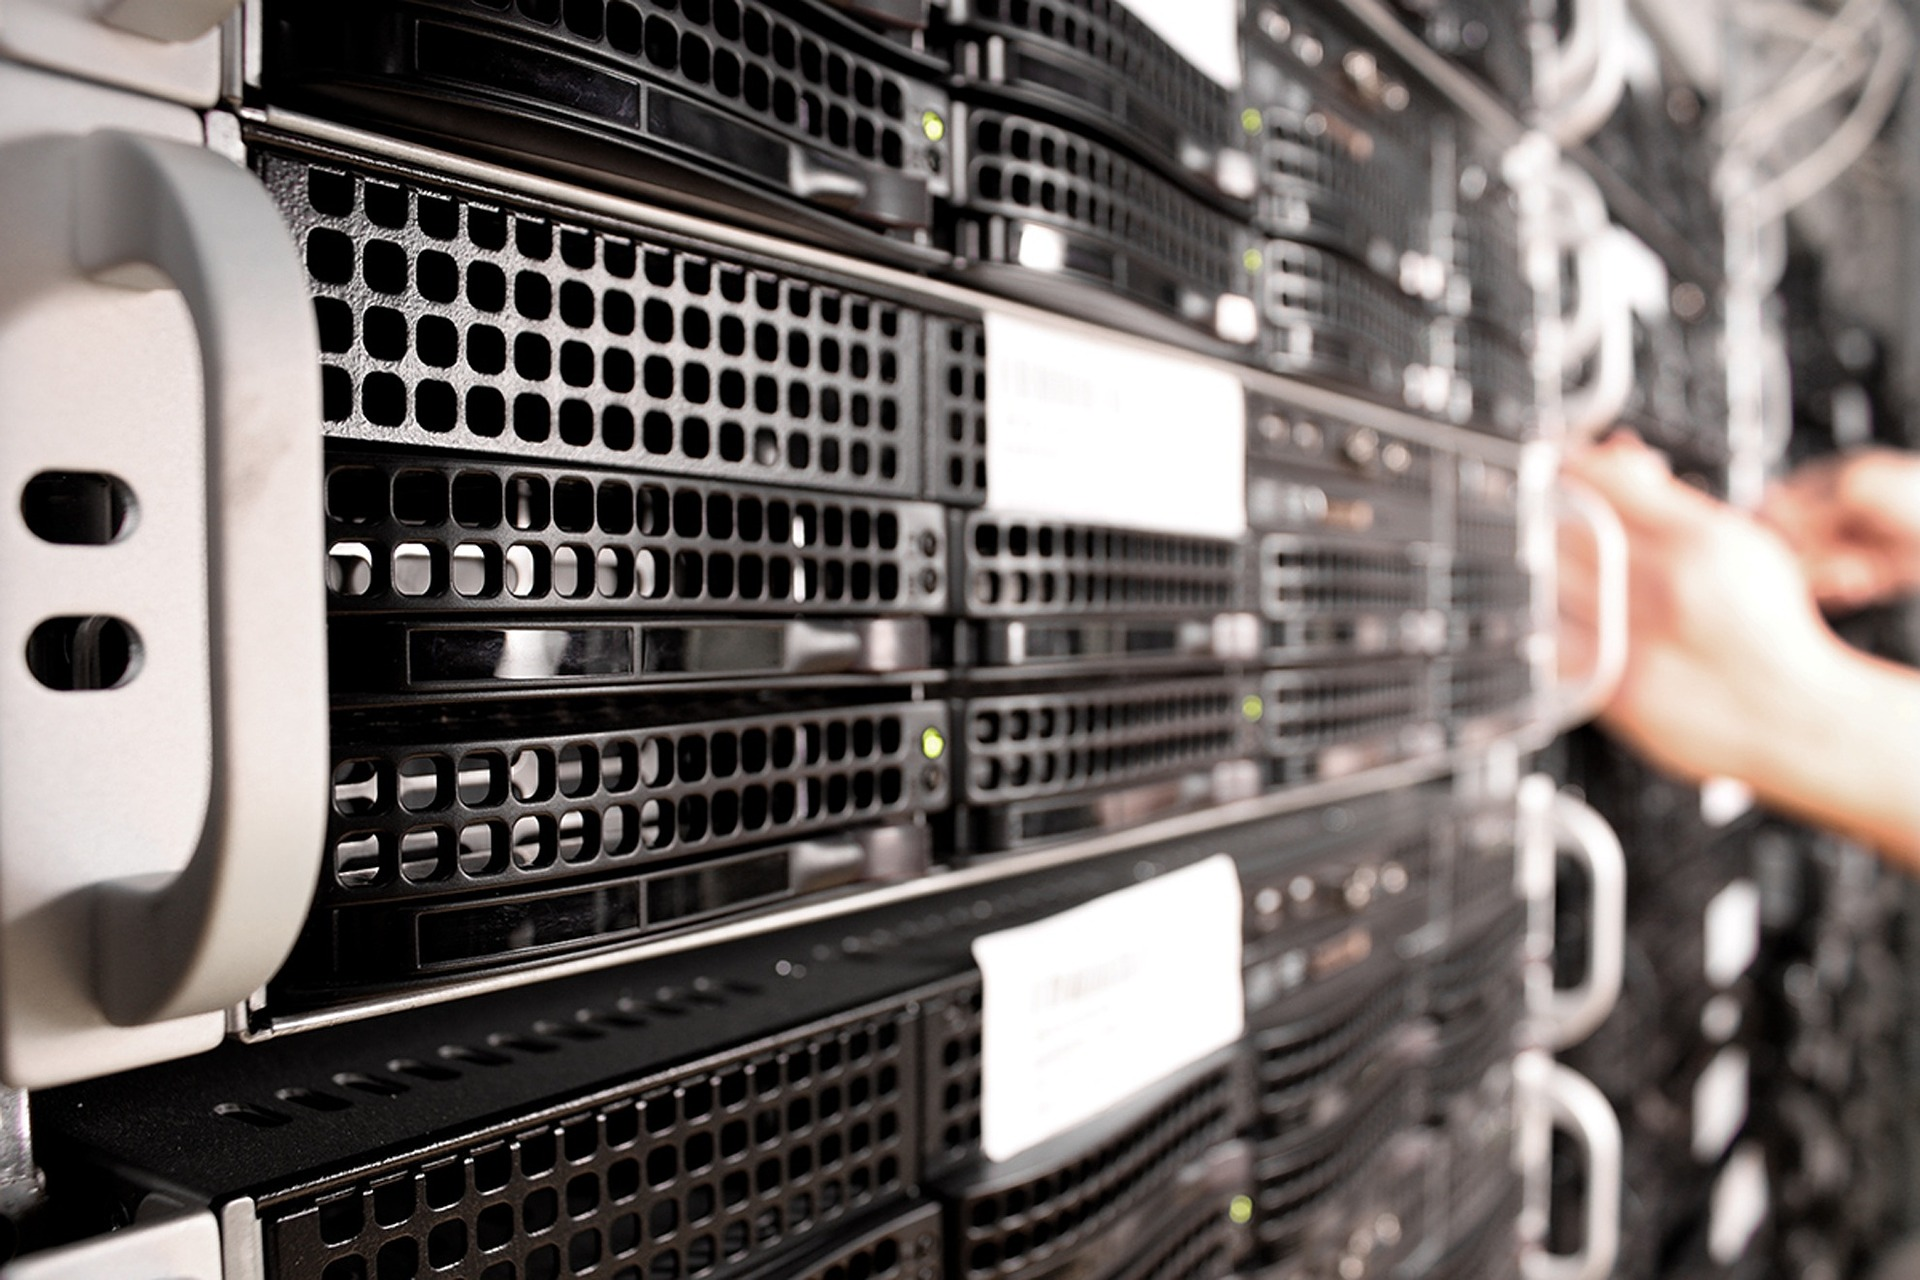 Servers in a data centre